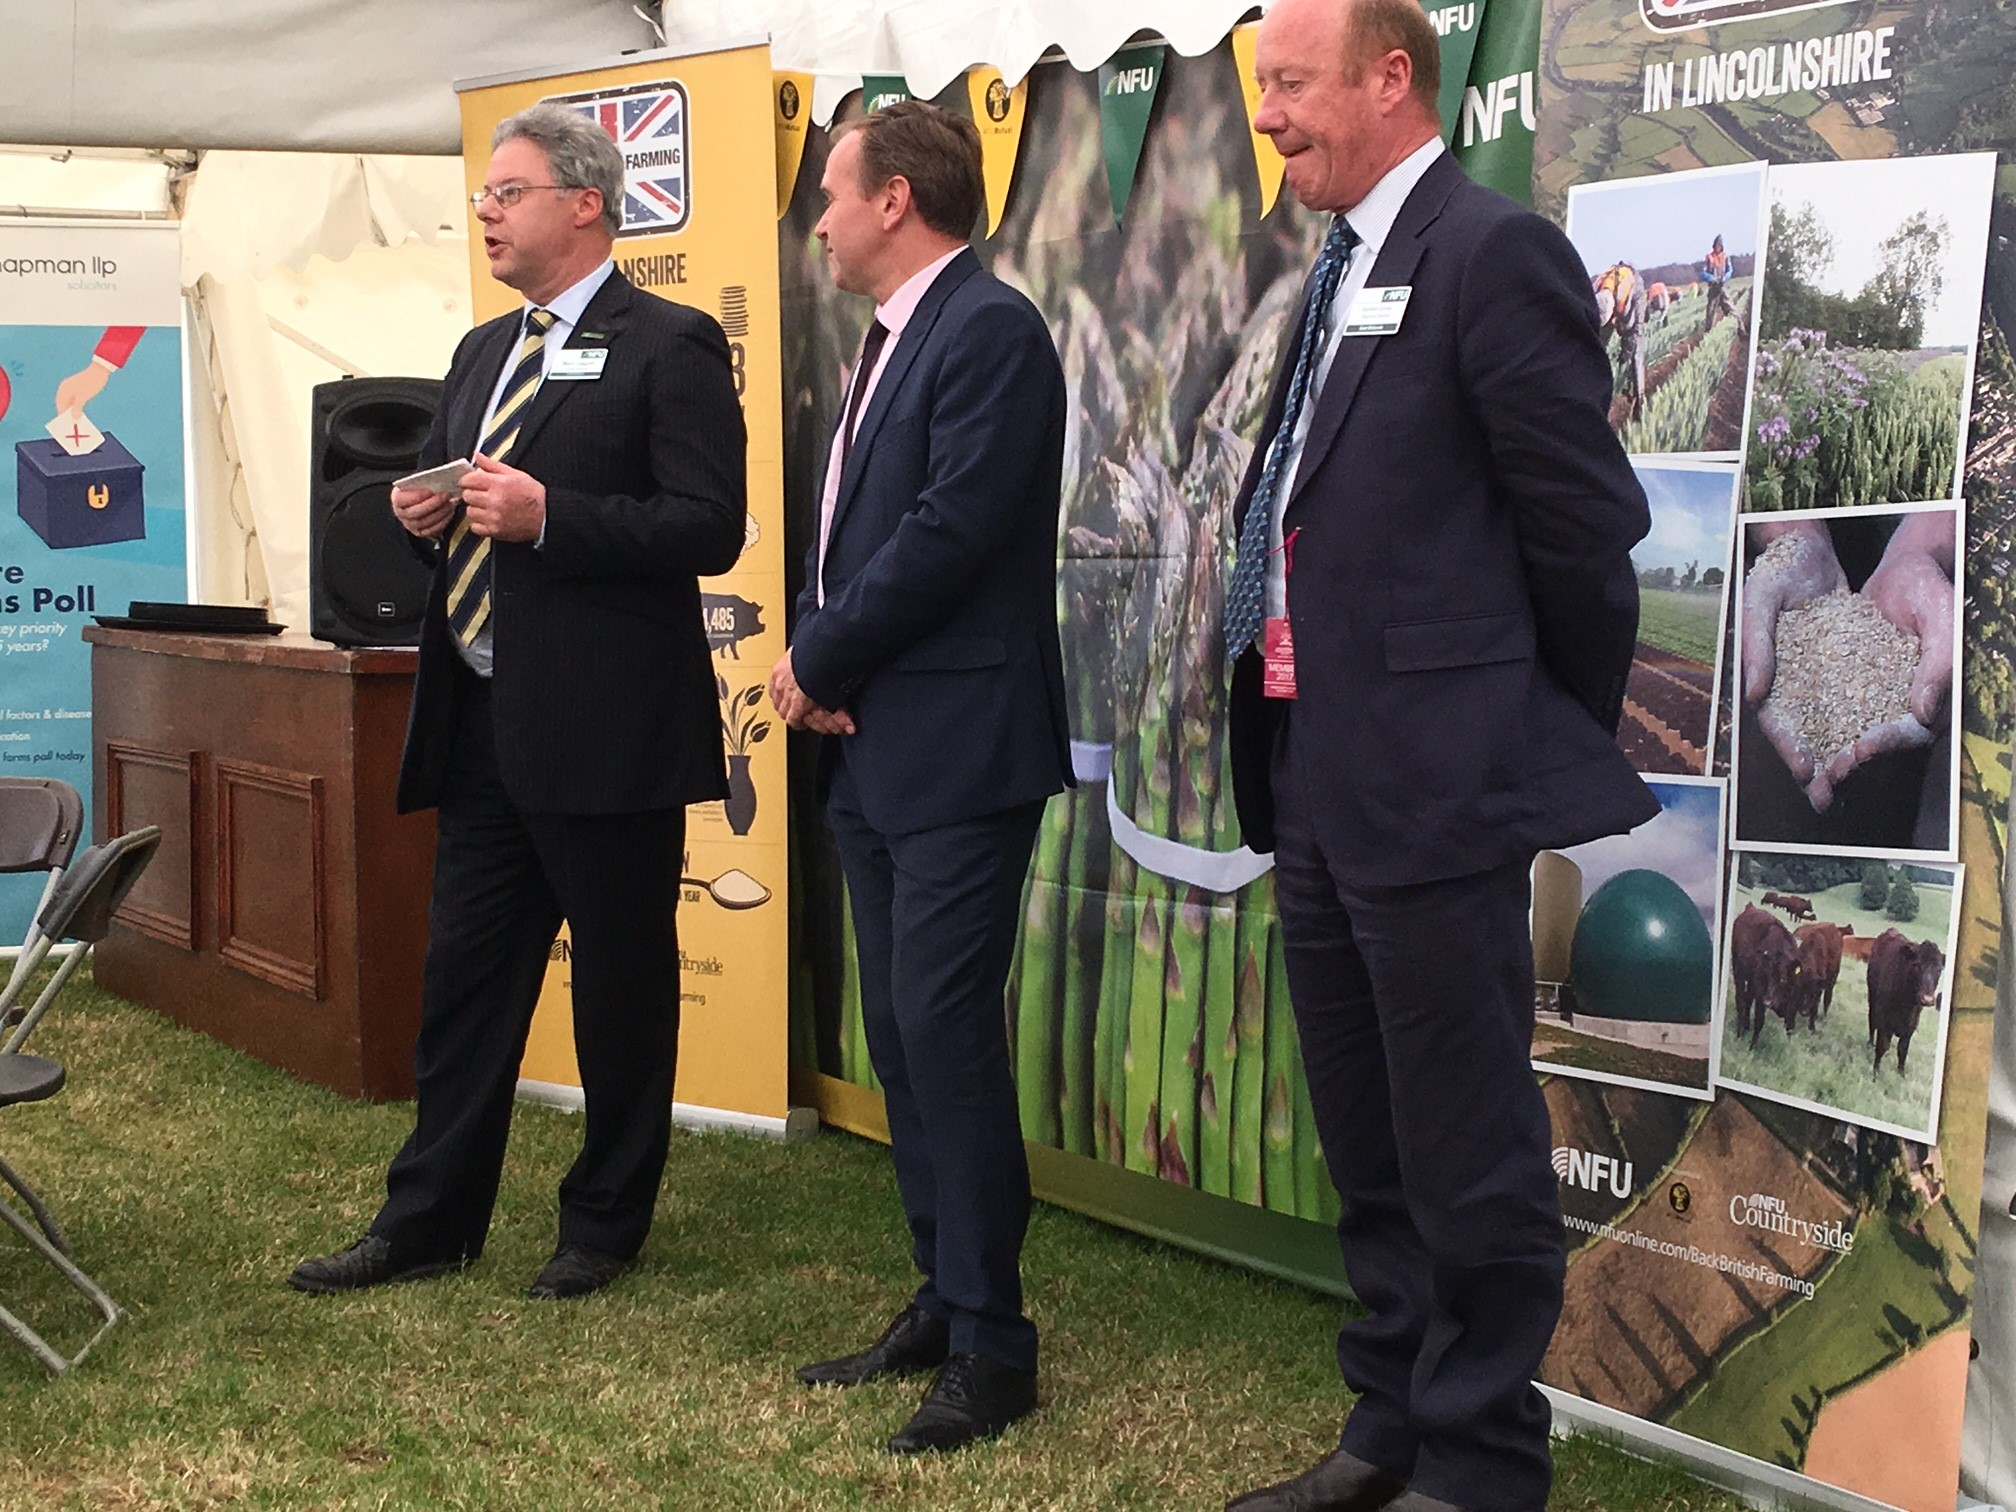 George Eustace, Minister of State at the Department for Environment, Food and Rural Affairs (Defra), in the NFU marquee with Mark Leggott and Gordon Corner